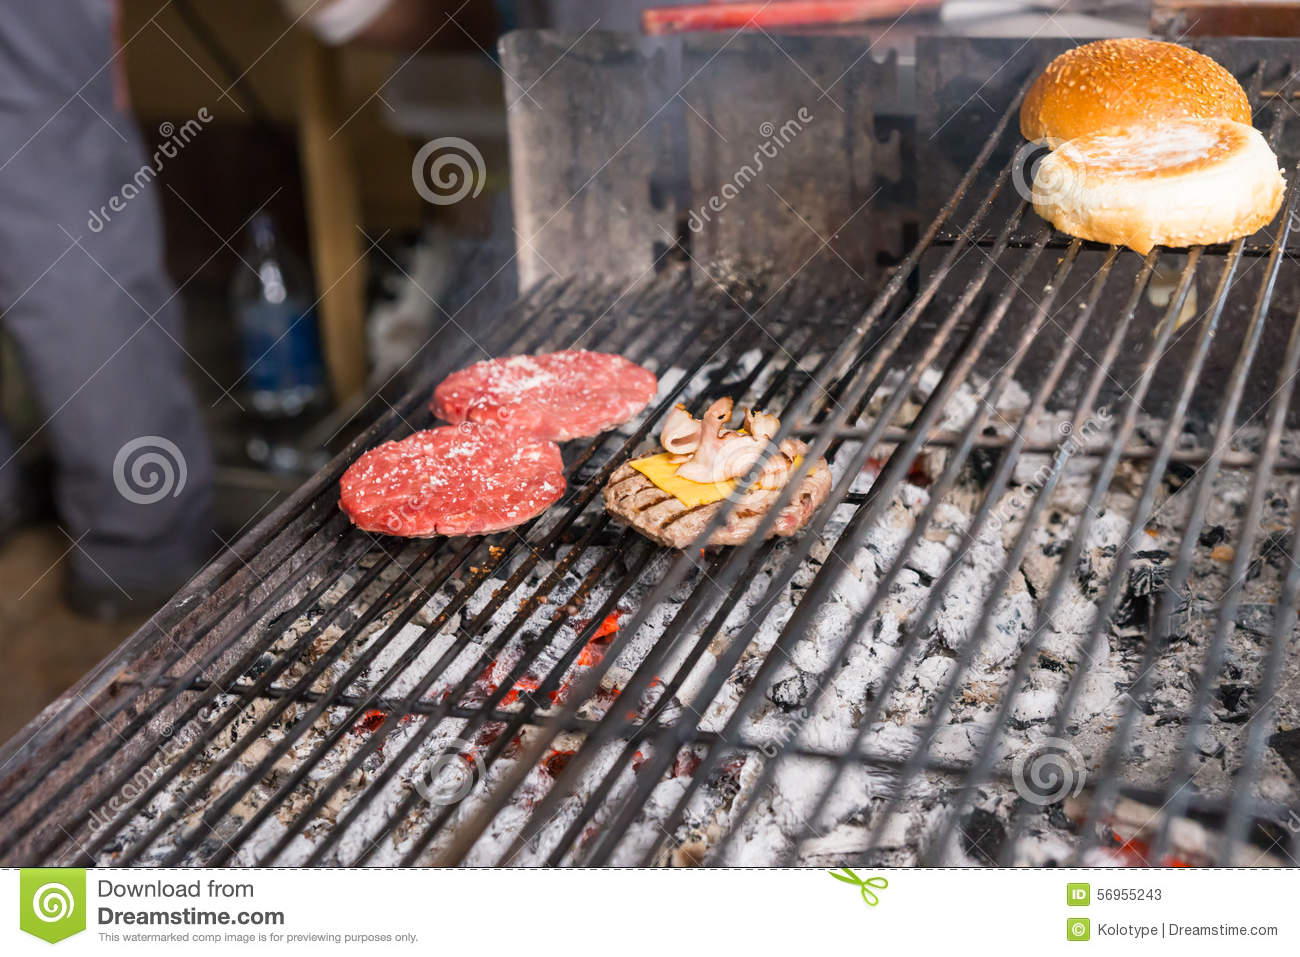 Burgers Cooking On Hot Charcoal Grill Stock Image Image Of Making Charcoal 56955243